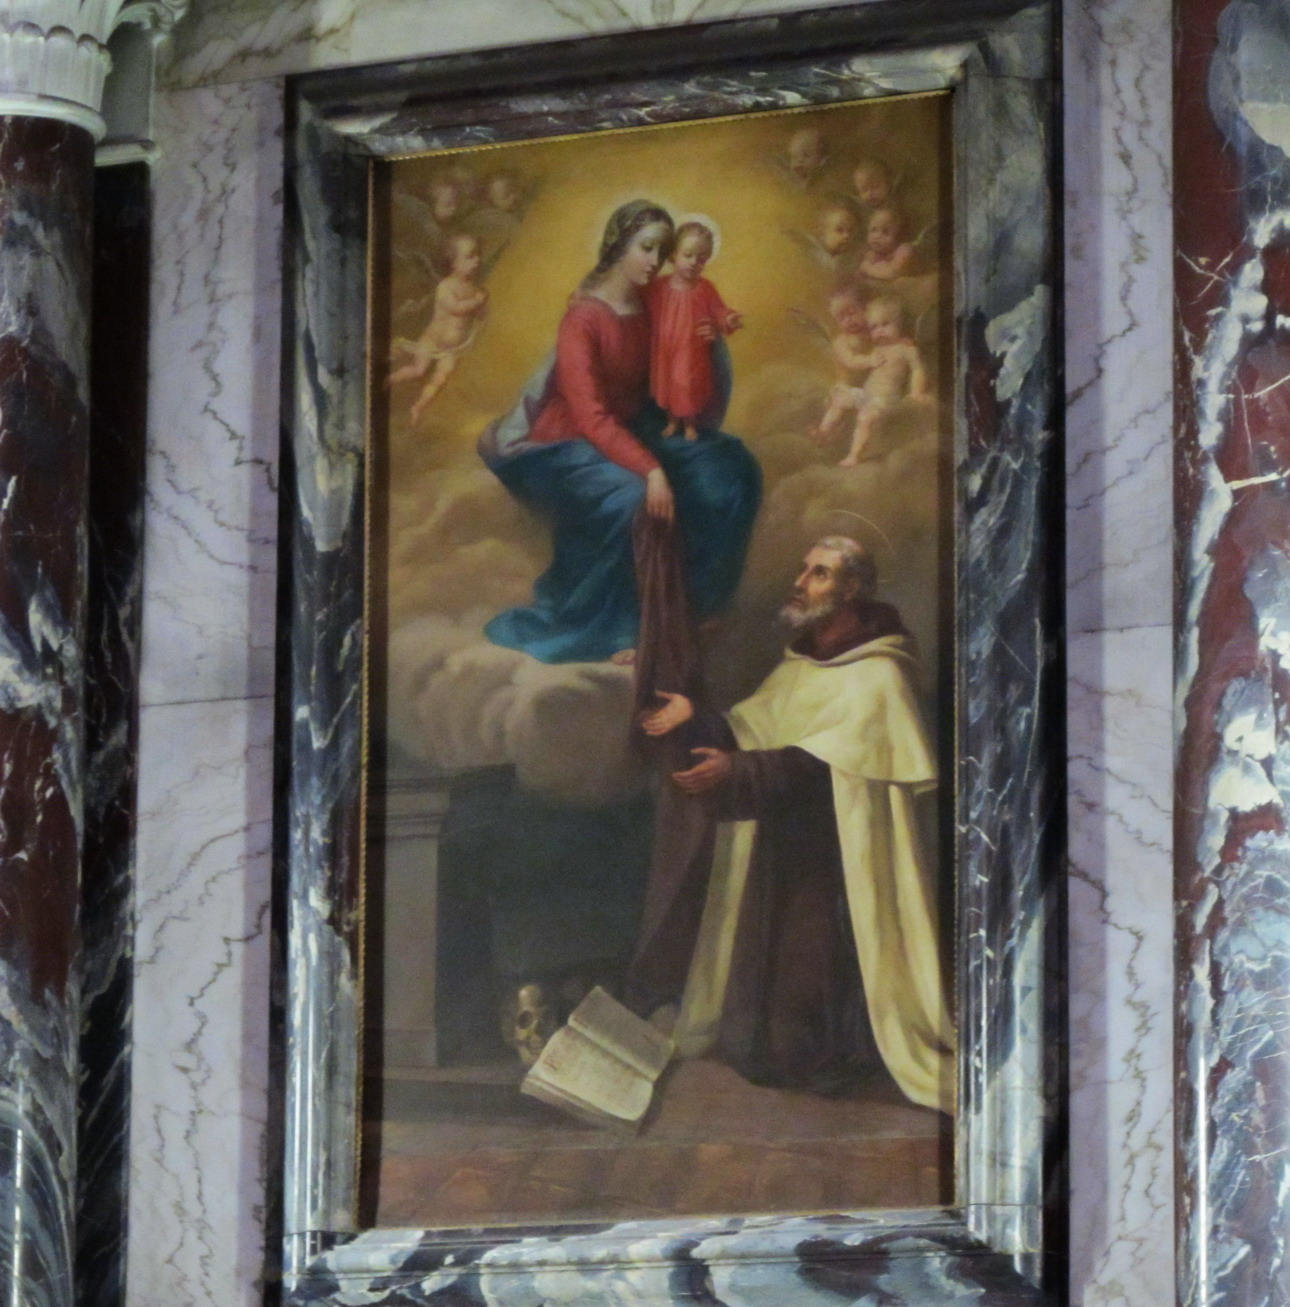 Our Top Picks For Preparing A Feast: Abbey Roads: Prayers In Preparation For The Feast Of Our Lady Of Mt. Carmel